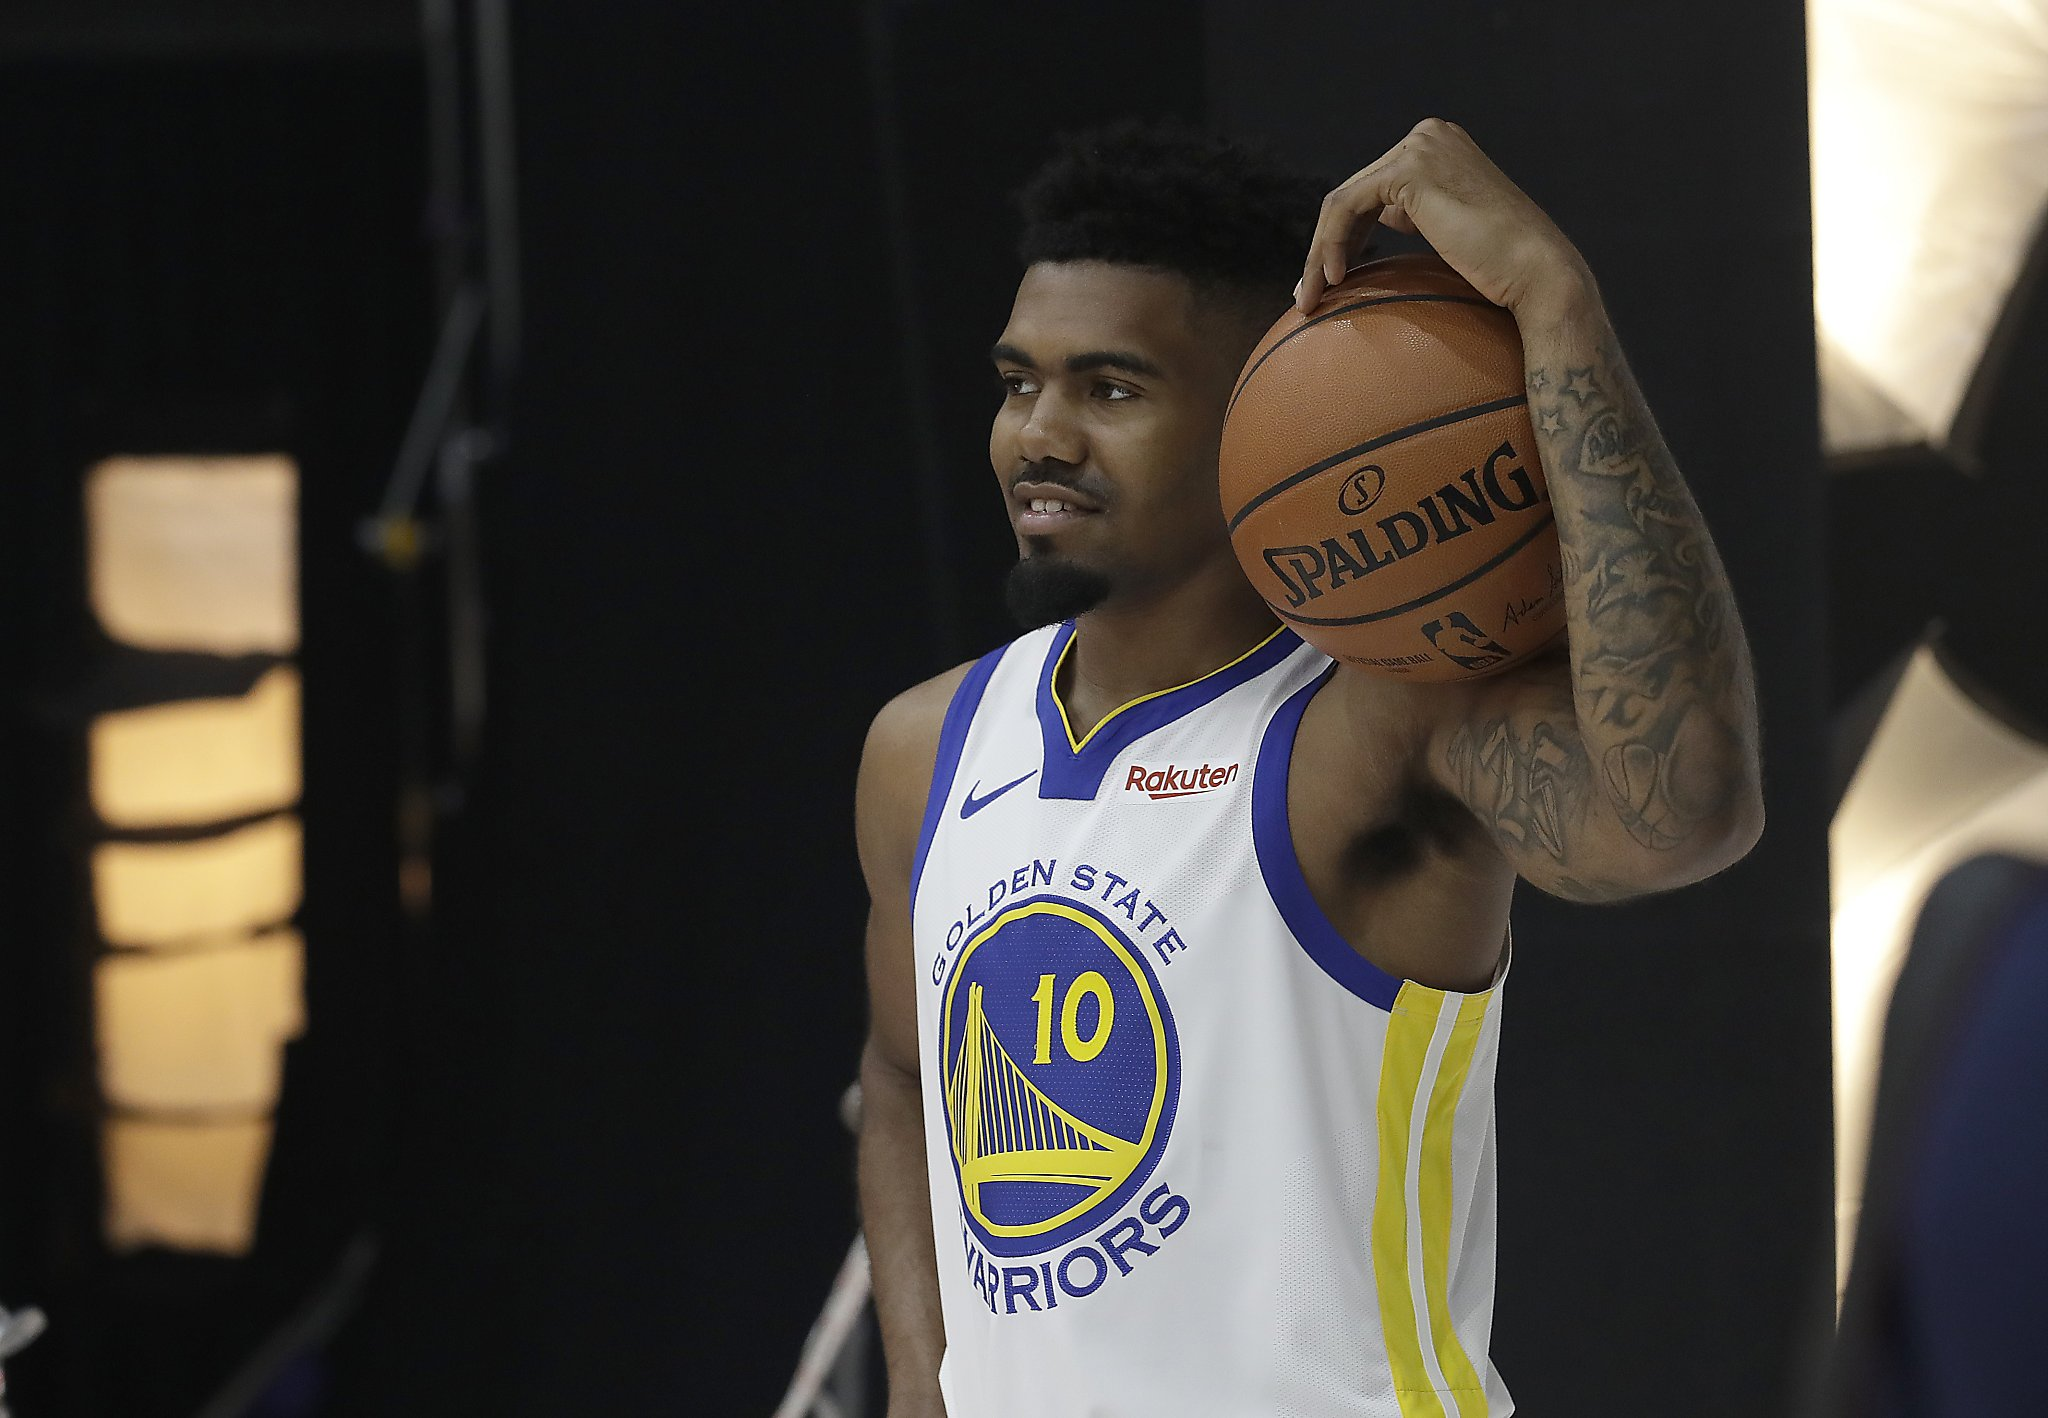 Warriors  Jacob Evans works to ease concerns about his jump shot -  SFChronicle.com 52896a31a